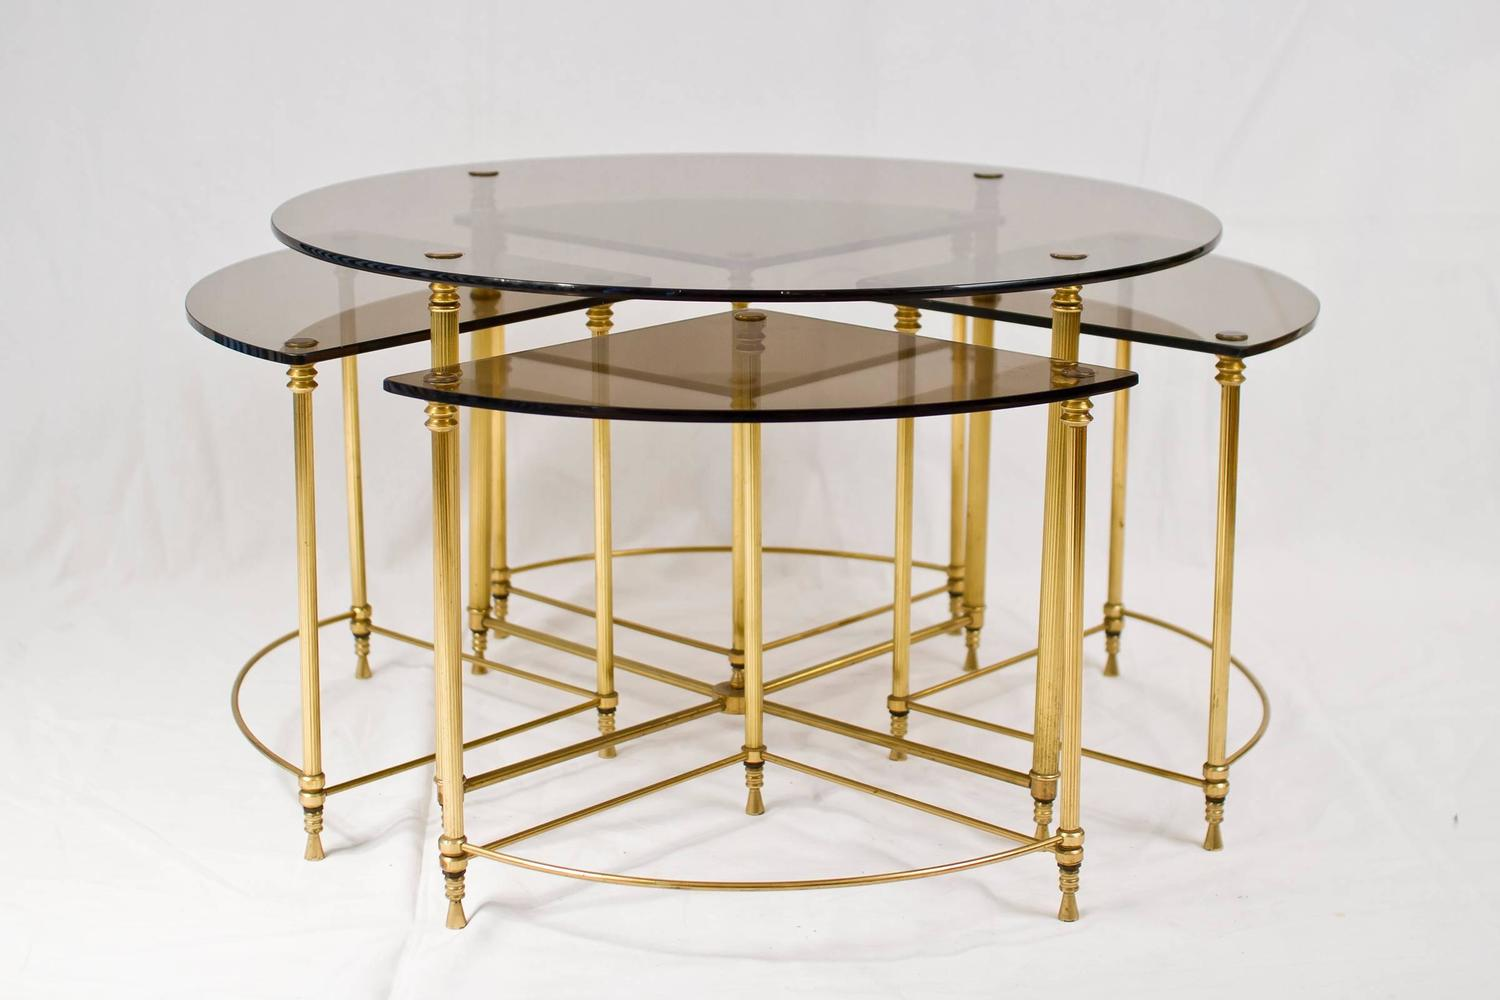 French Nesting Tables Joevin Ortjens Galerie